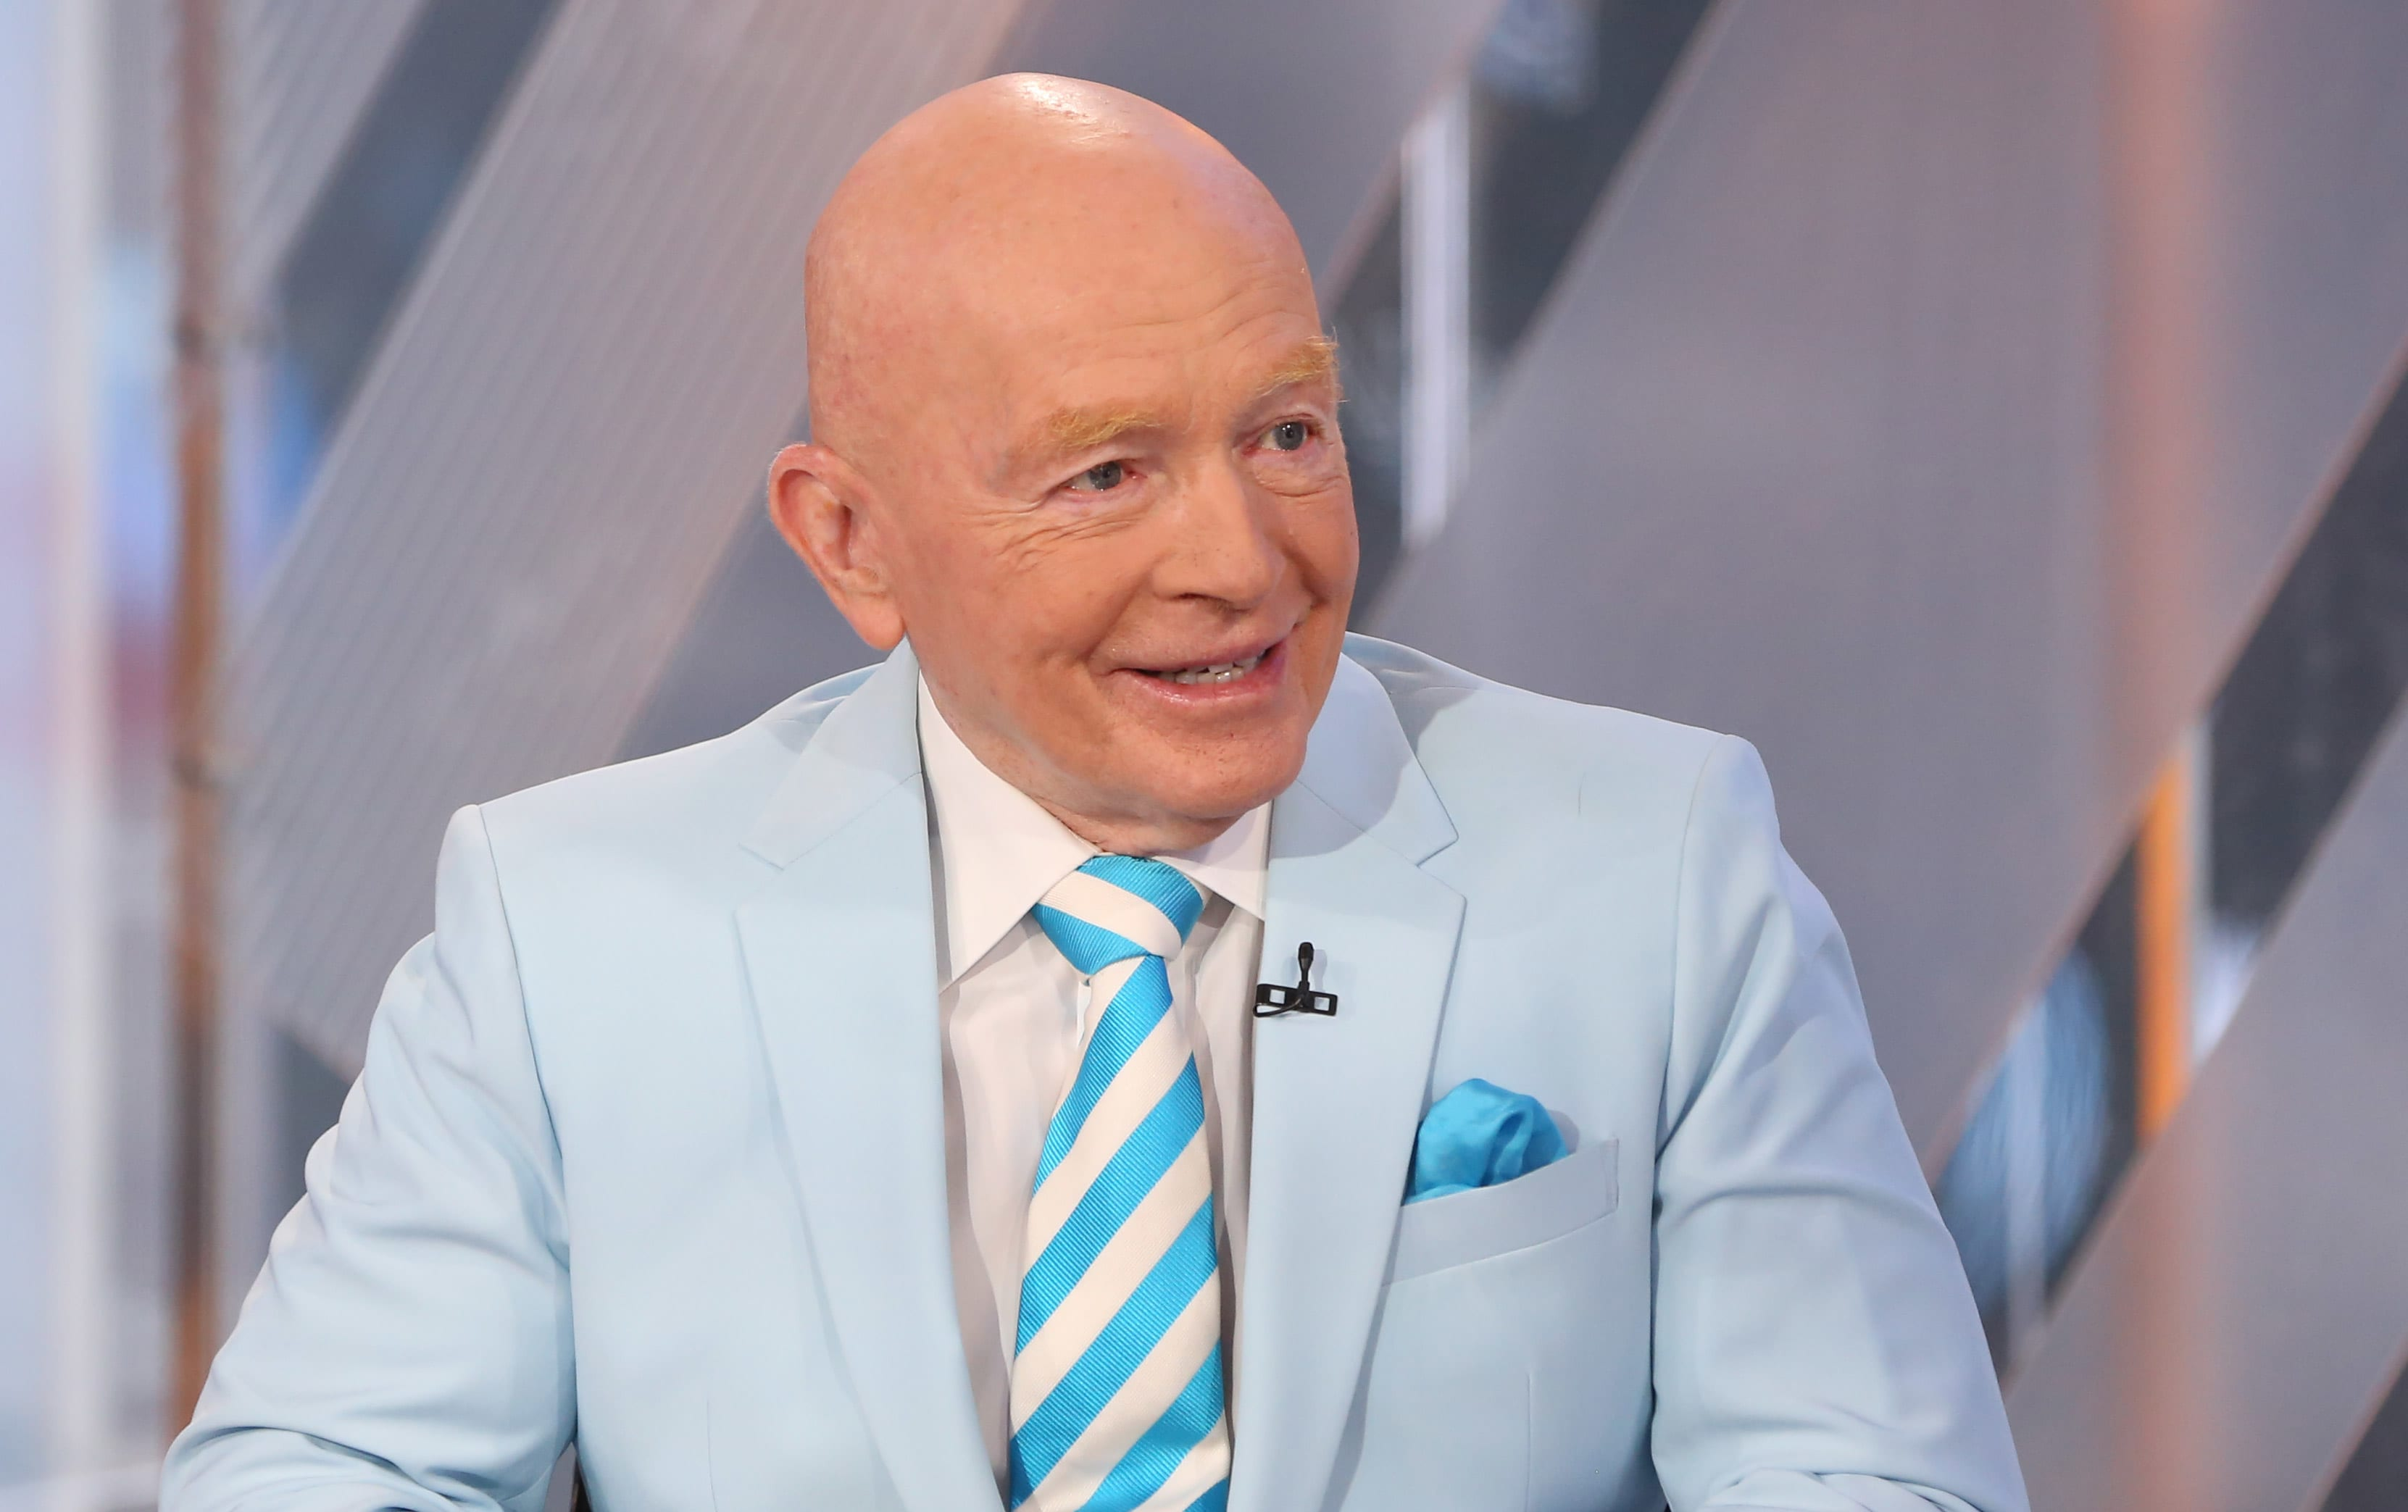 India's central bank did the 'wrong thing' by not cutting interest rates, Mark Mobius says